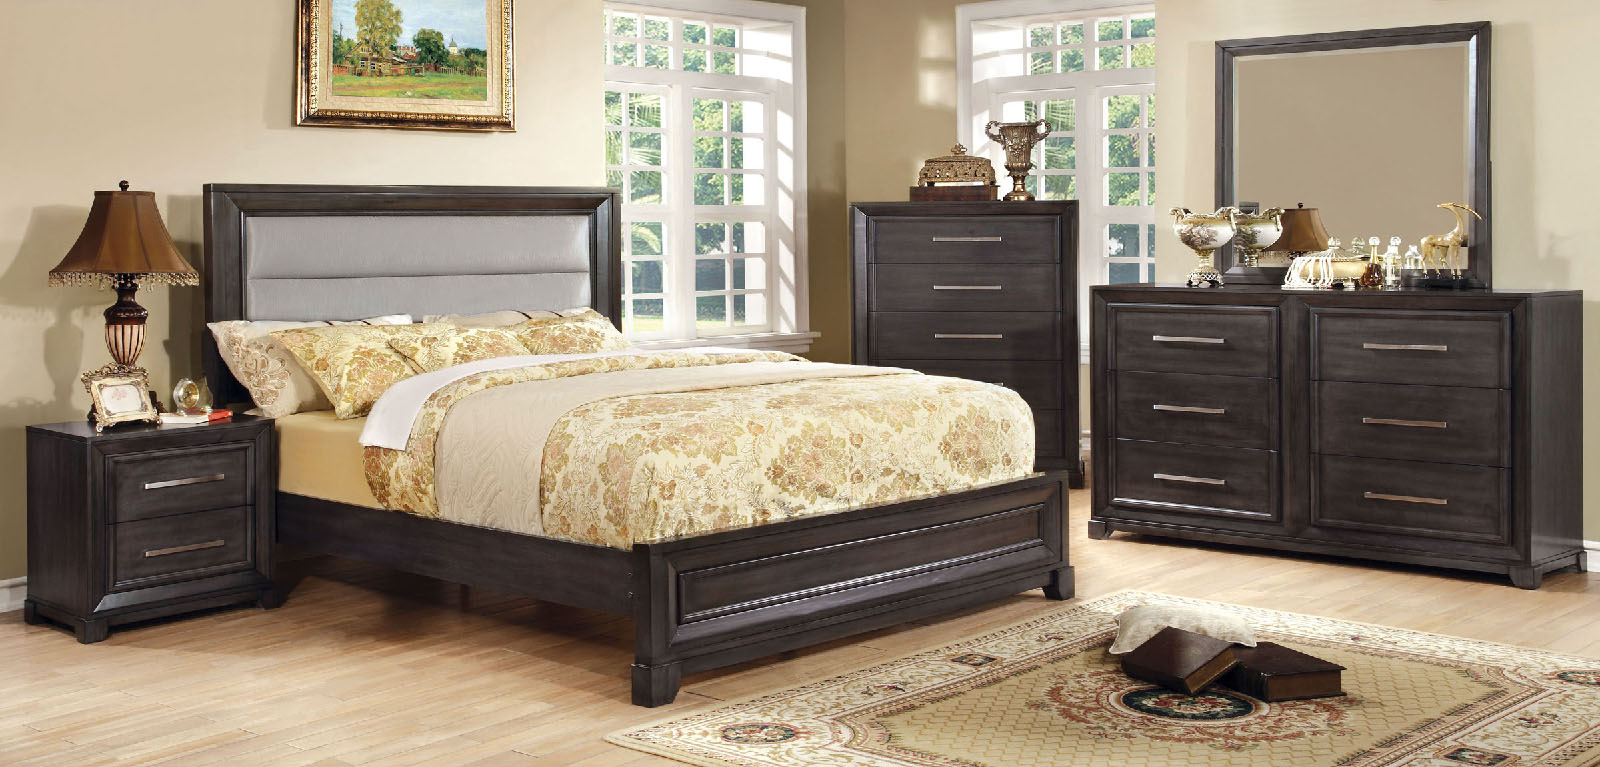 Bradley Cm7790 4pc Bedroom Set Furniture Mattress Los Angeles And El Monte